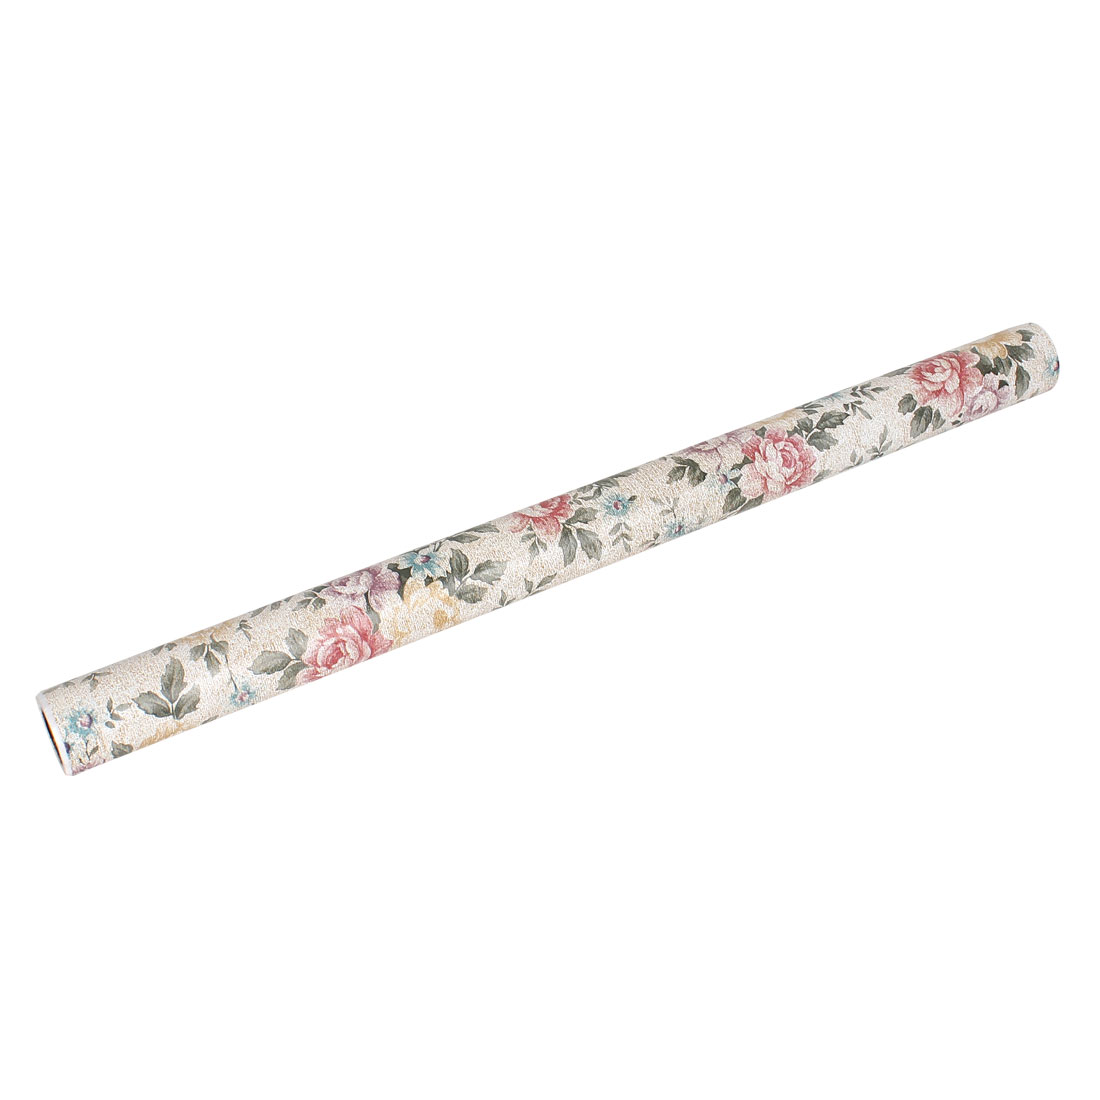 45cm x 2m Beige Gray Flowers Pattern Adhesive Wallpaper Roll Sticker